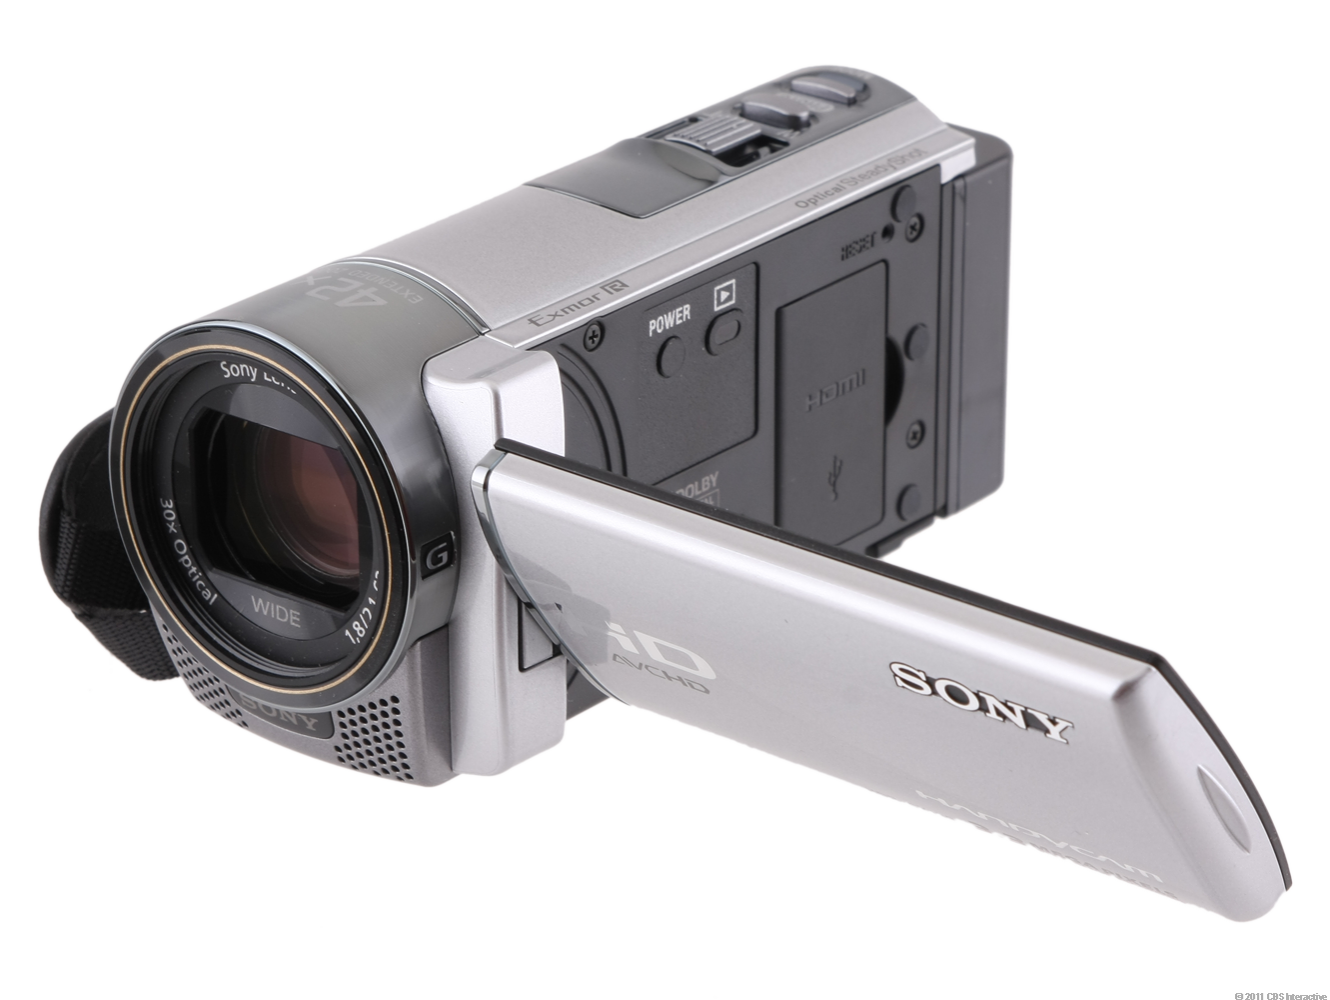 Sony Camcorder Buying Guide Hdr Pj810 Handycam Cx130 160 Review Rh Pinterest Com Hd